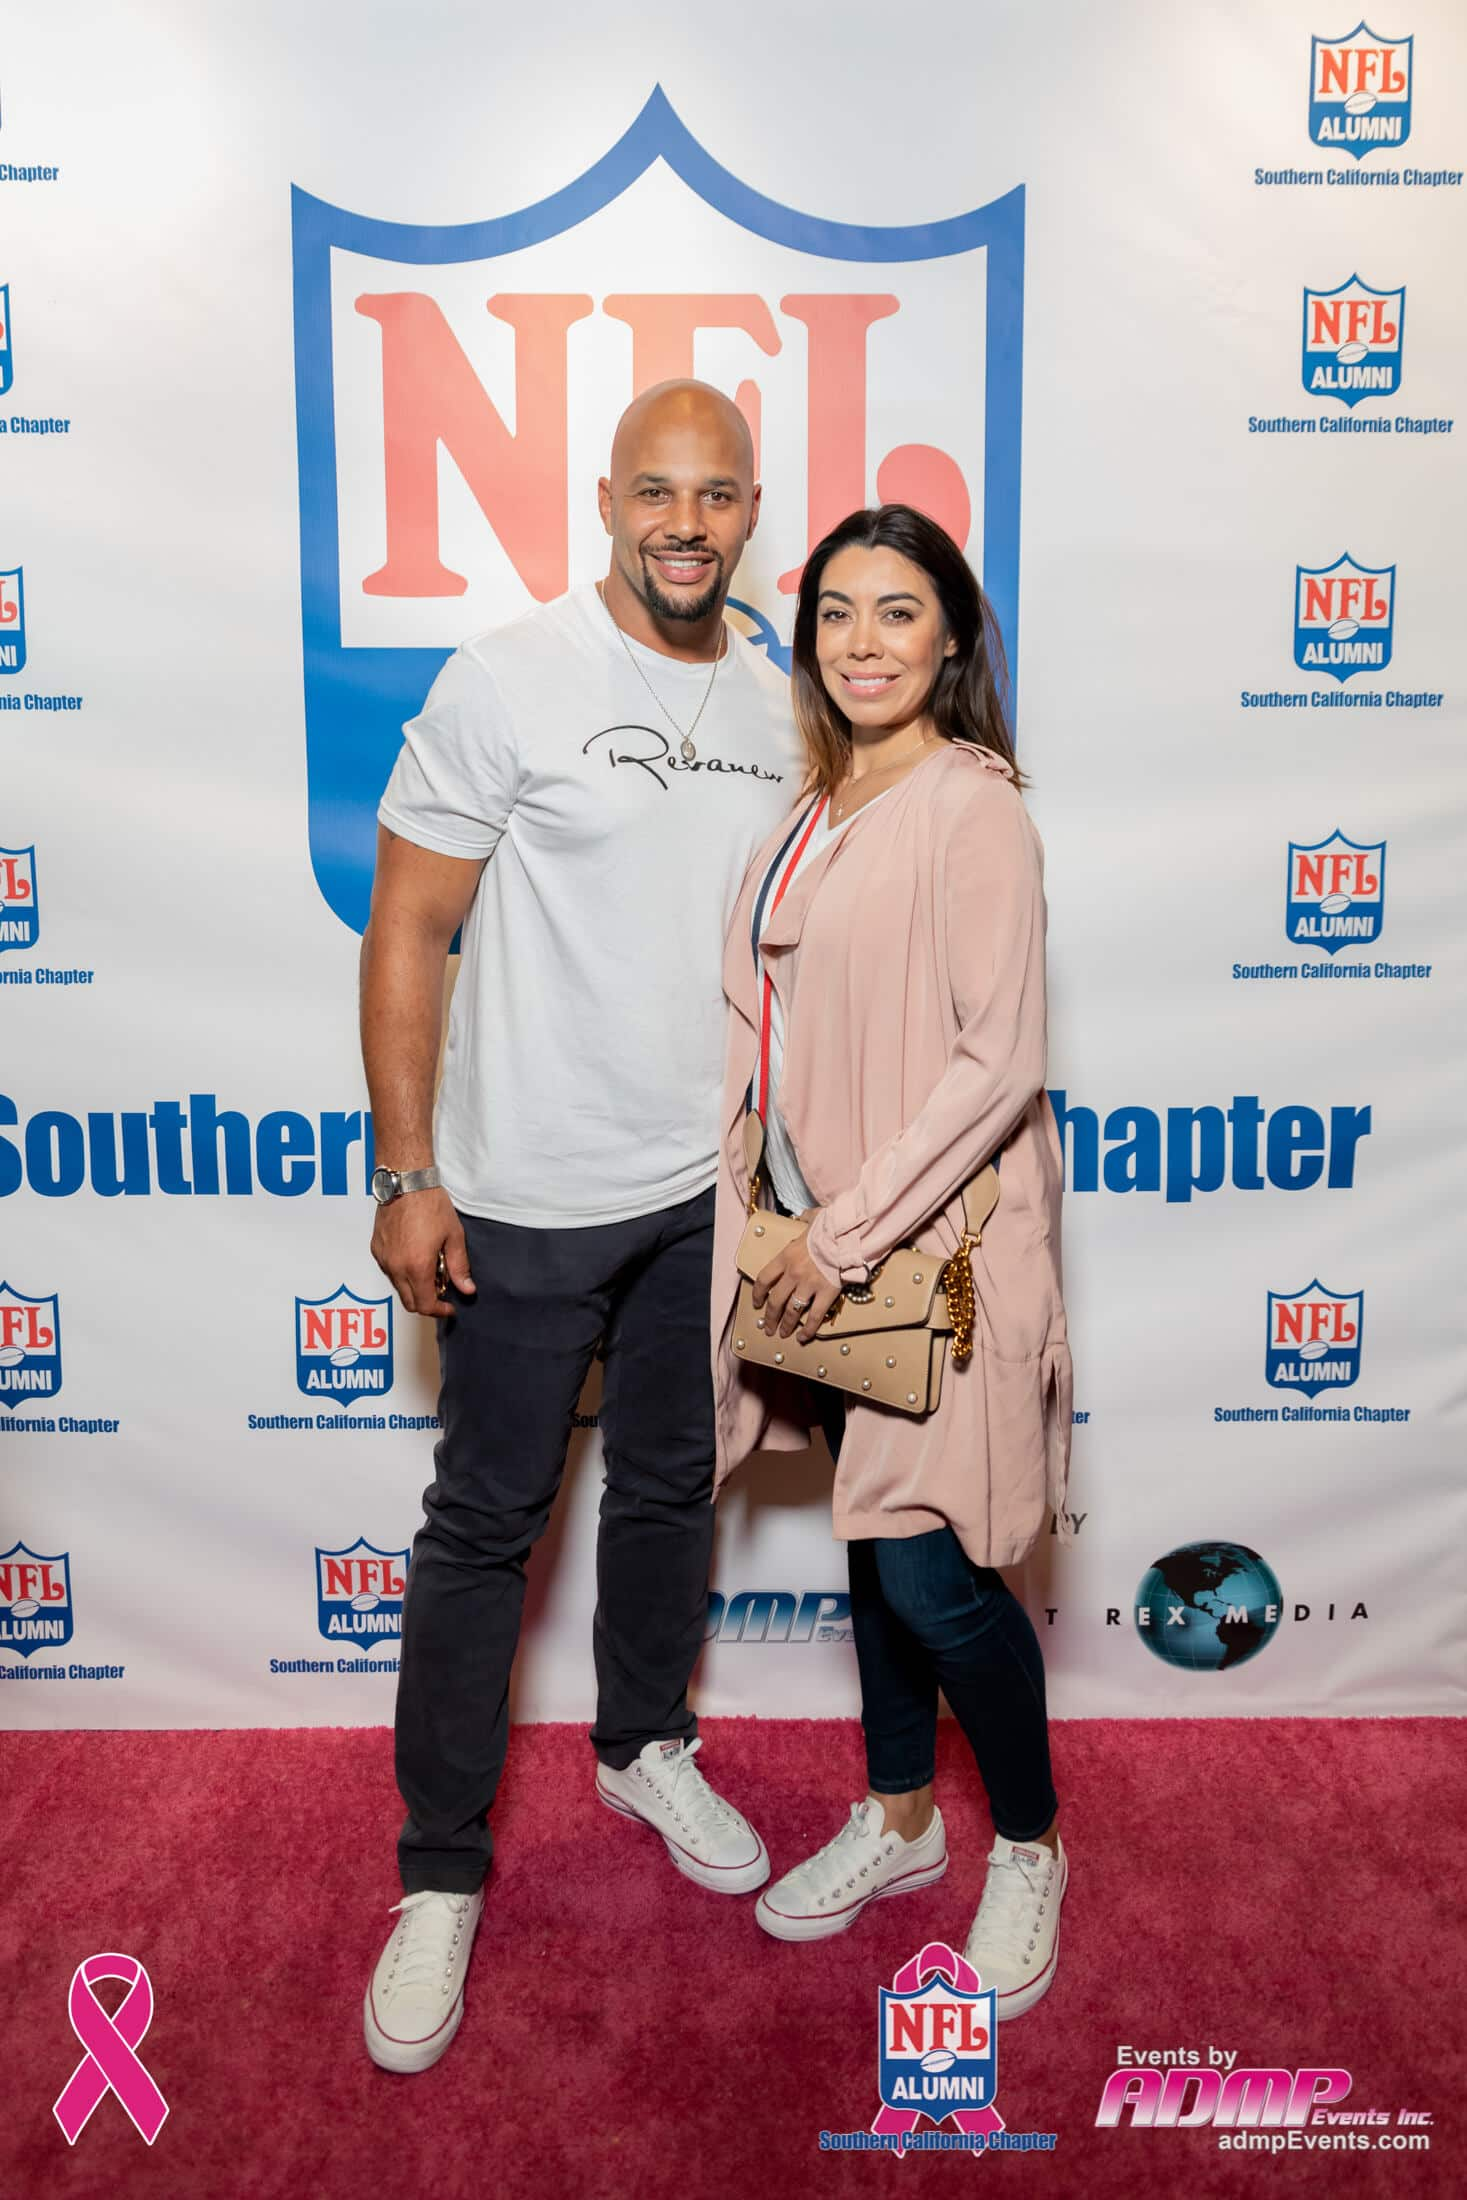 NFL Alumni SoCal Charity Event Series Breast Cancer Event 10-14-19-231